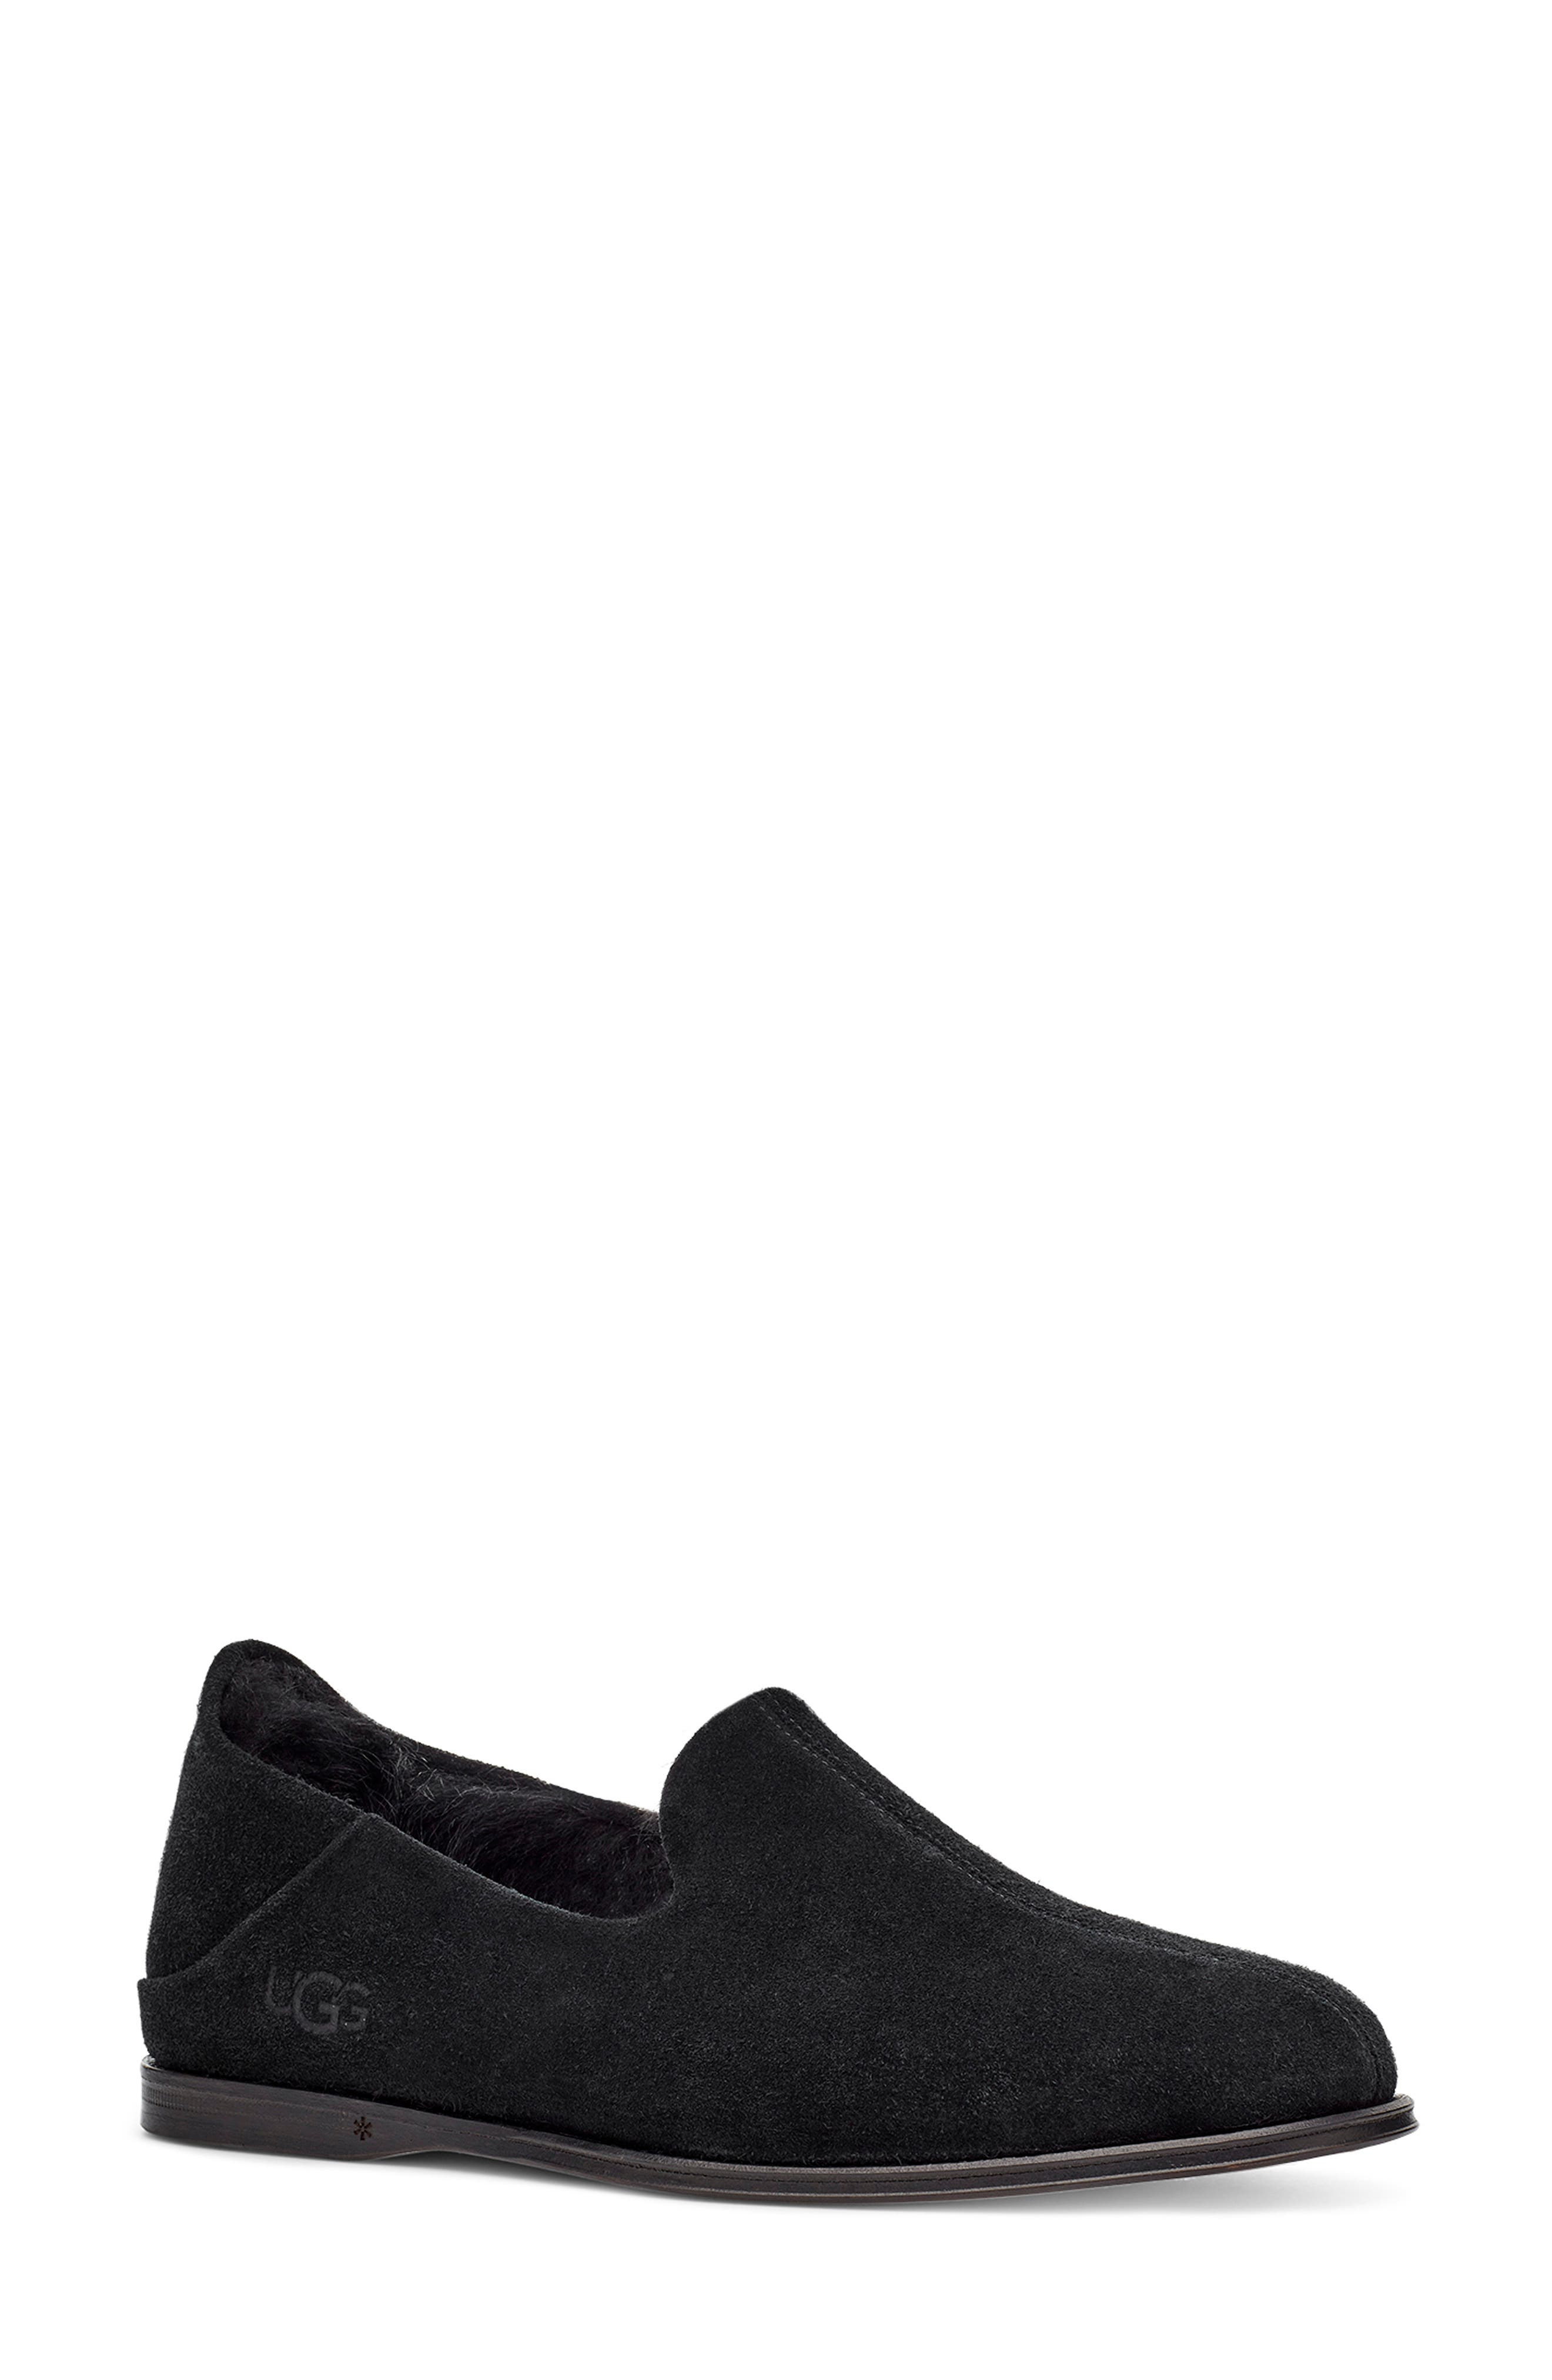 Image of UGG Chateau Genuine Shearling Lined Slipper